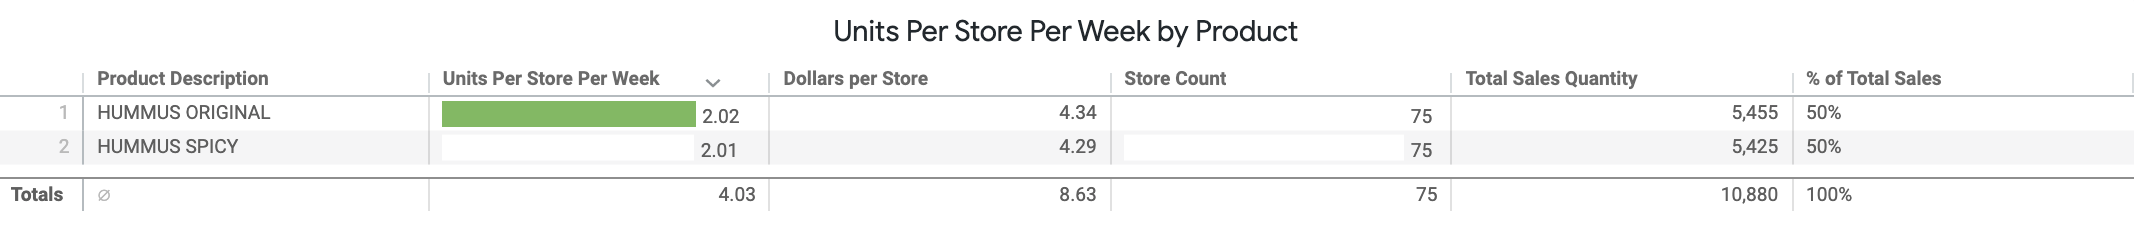 Units_Per_Store_Per_Week_by_Product.png